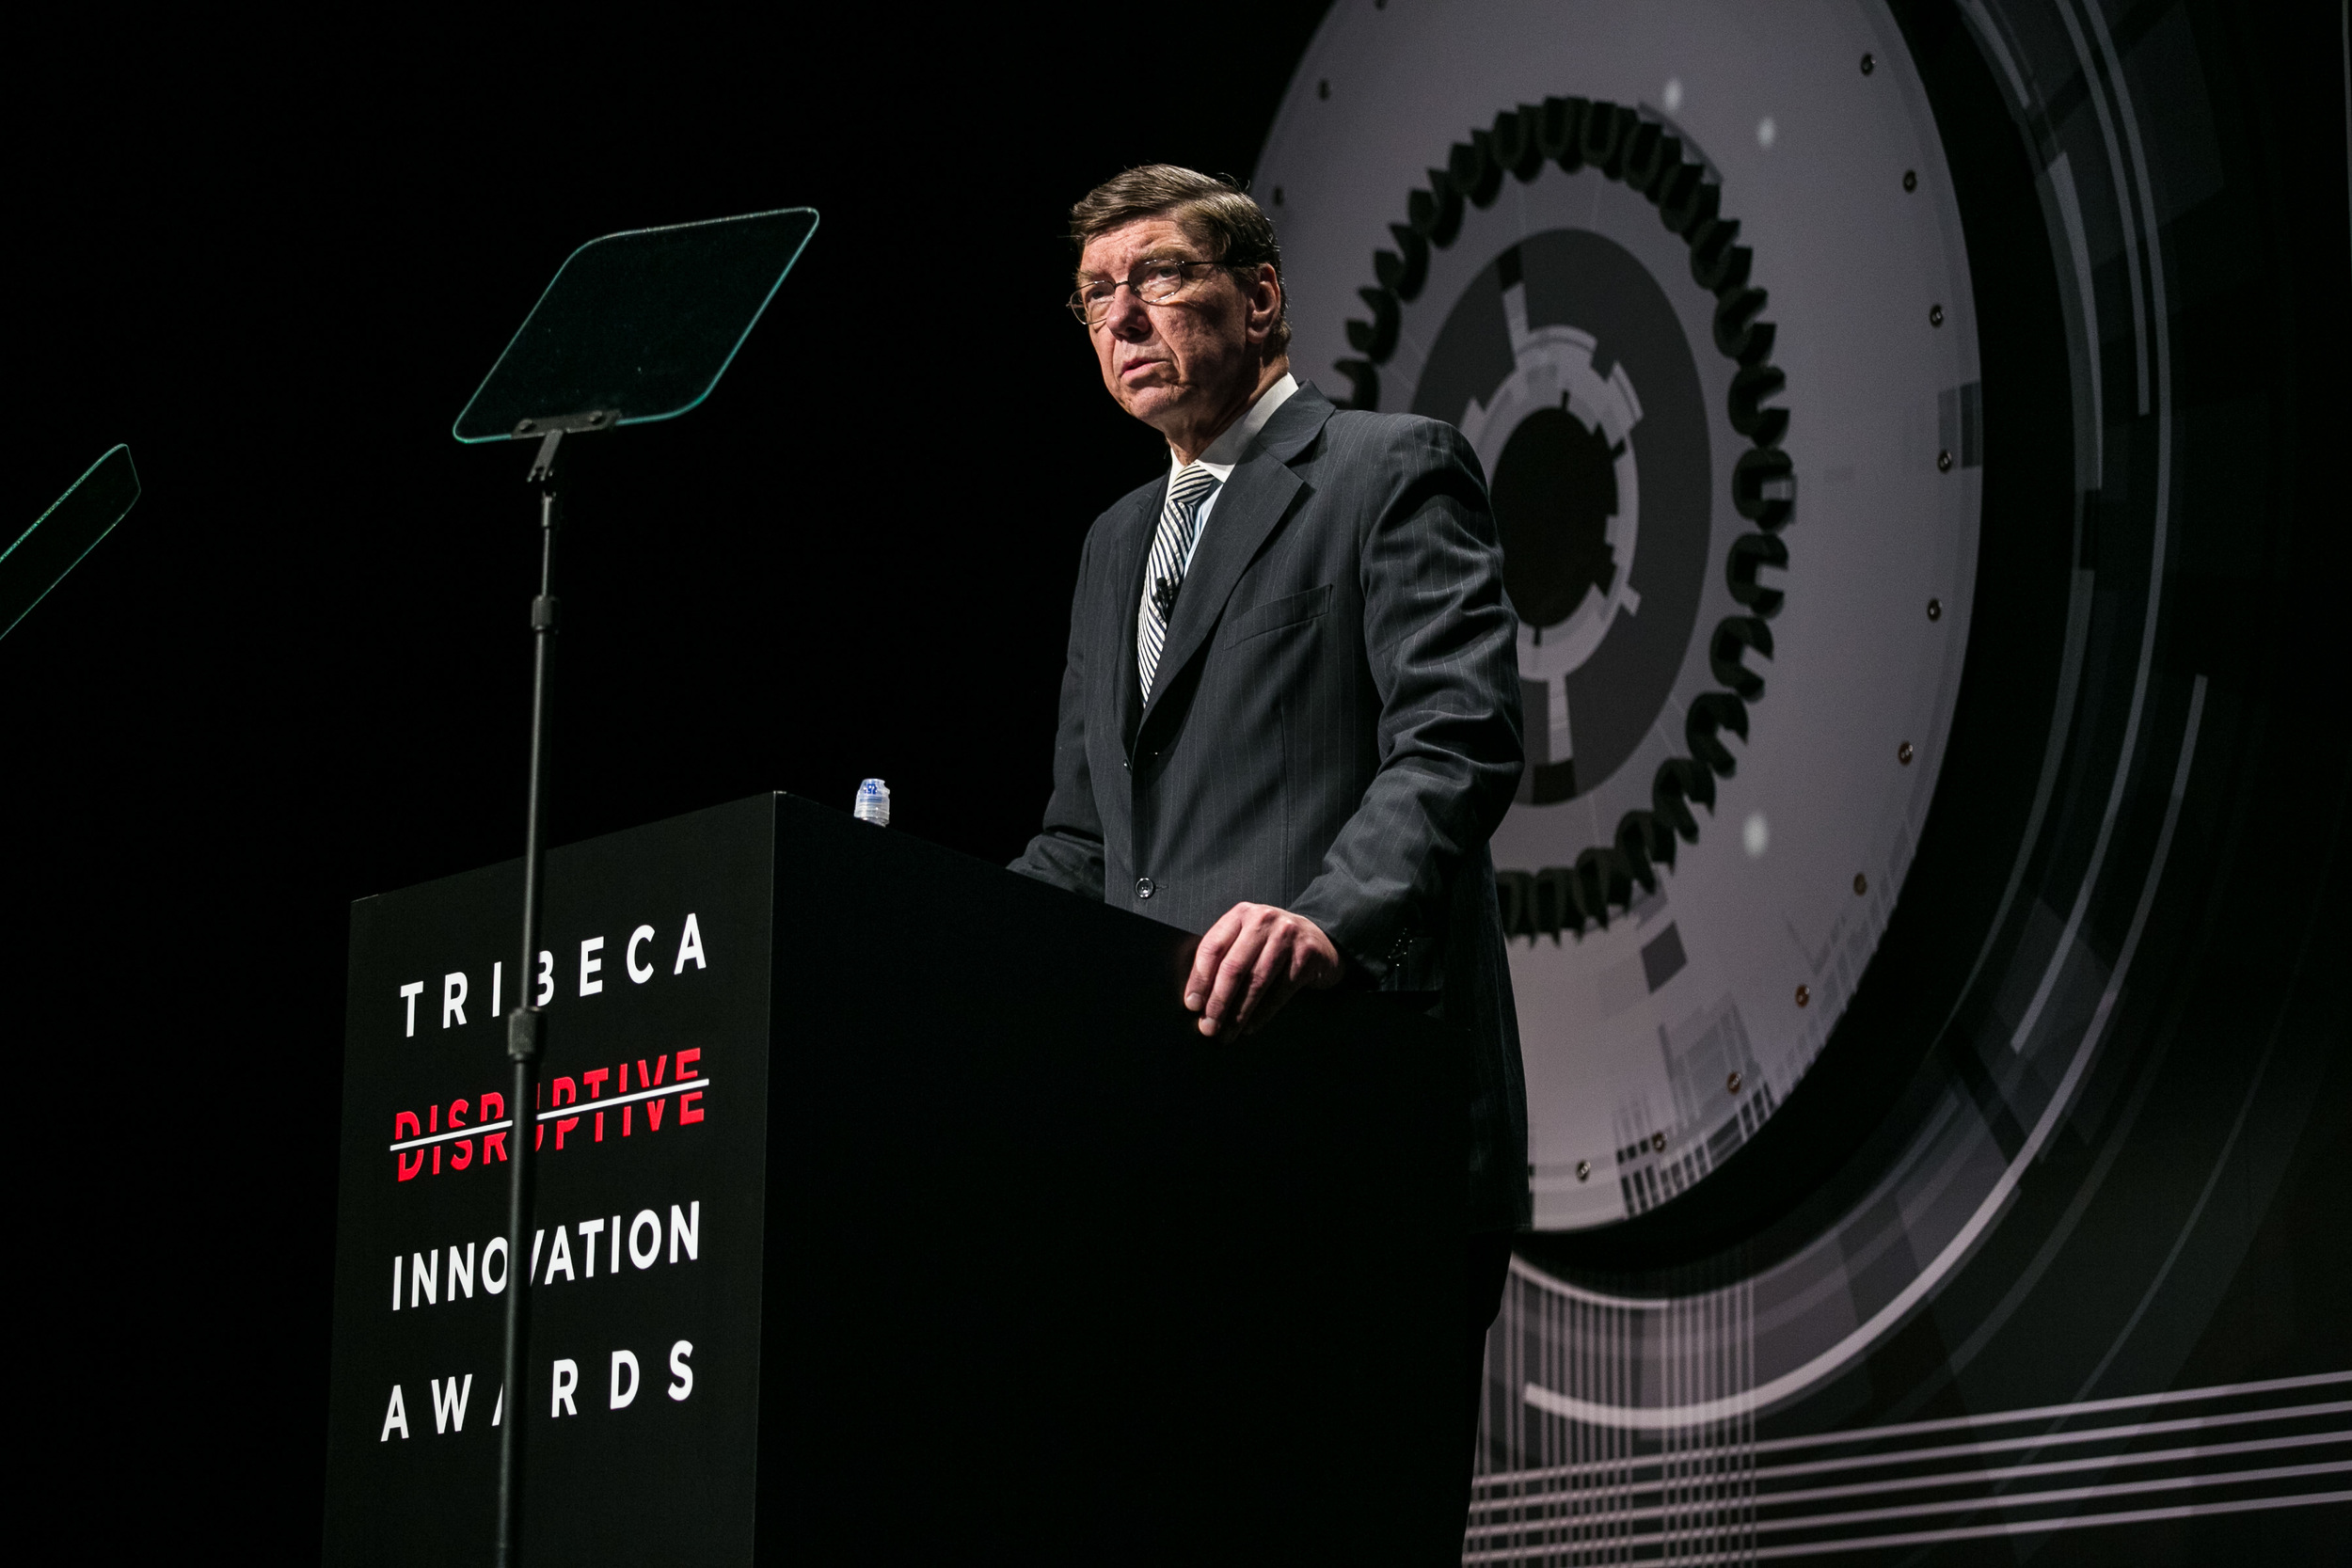 20150424-Tribeca Disruptive Innovation Awards-1348.jpg